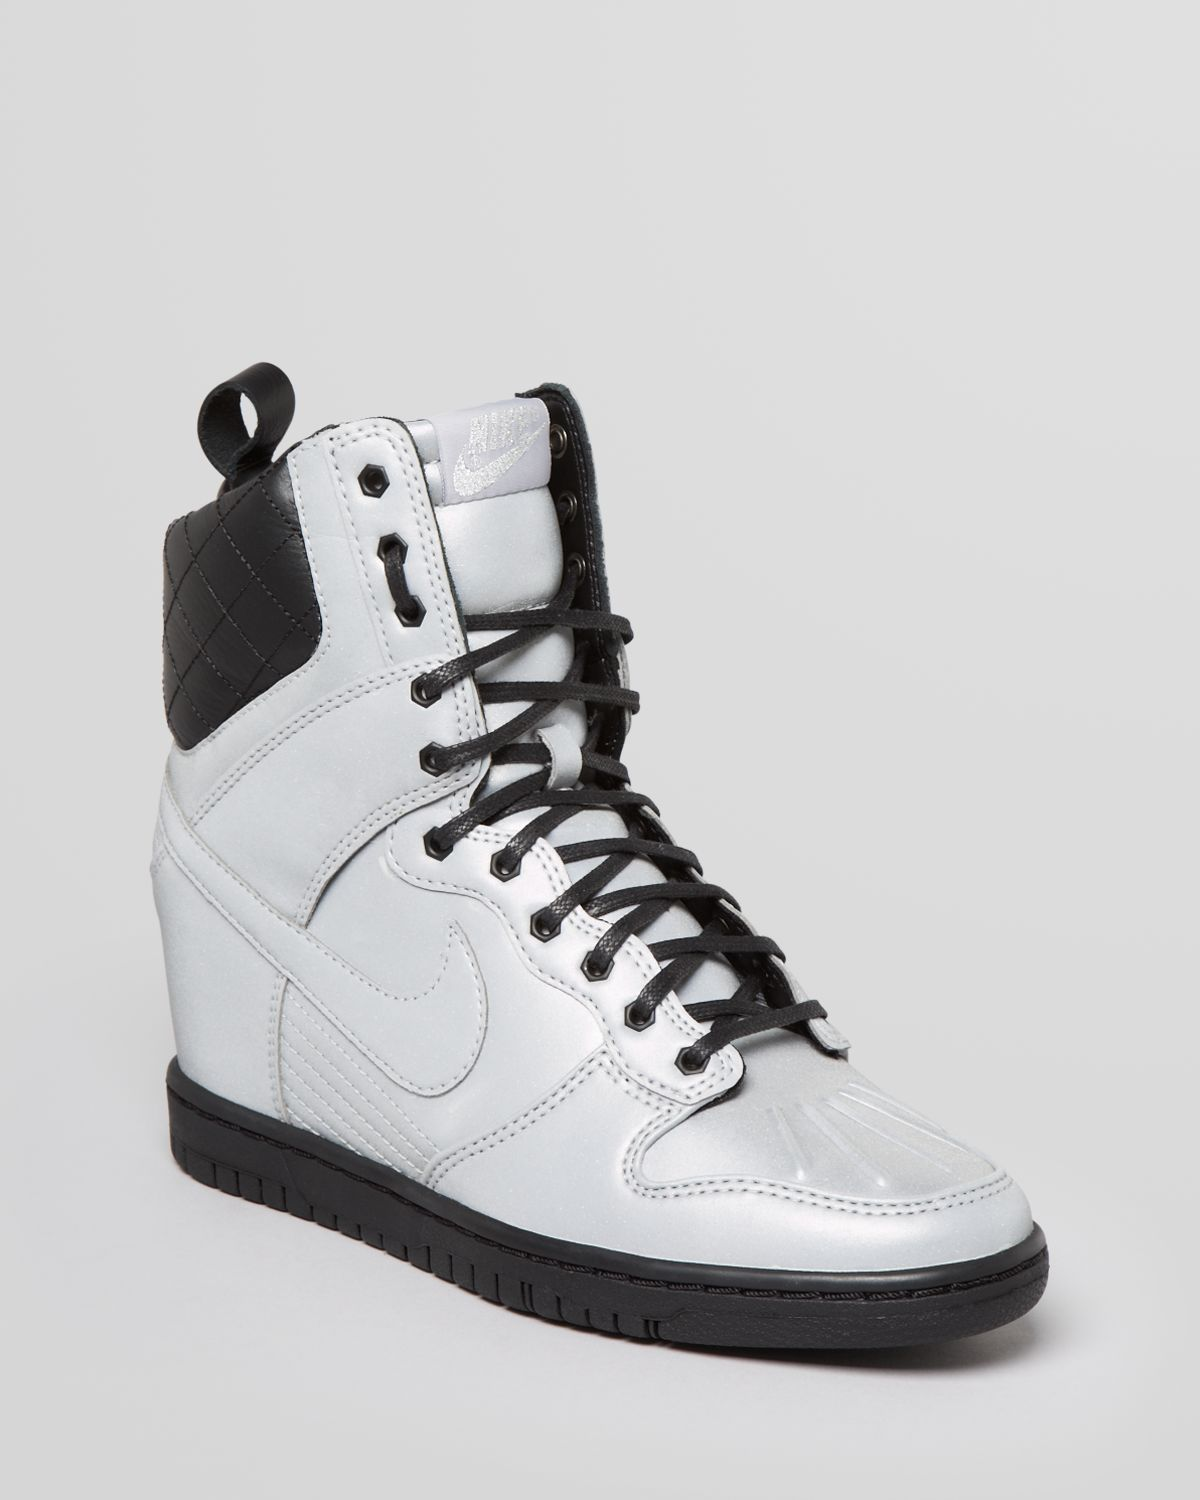 Nike Lace Up High Top Sneaker Wedges Womens Dunk Super Sky